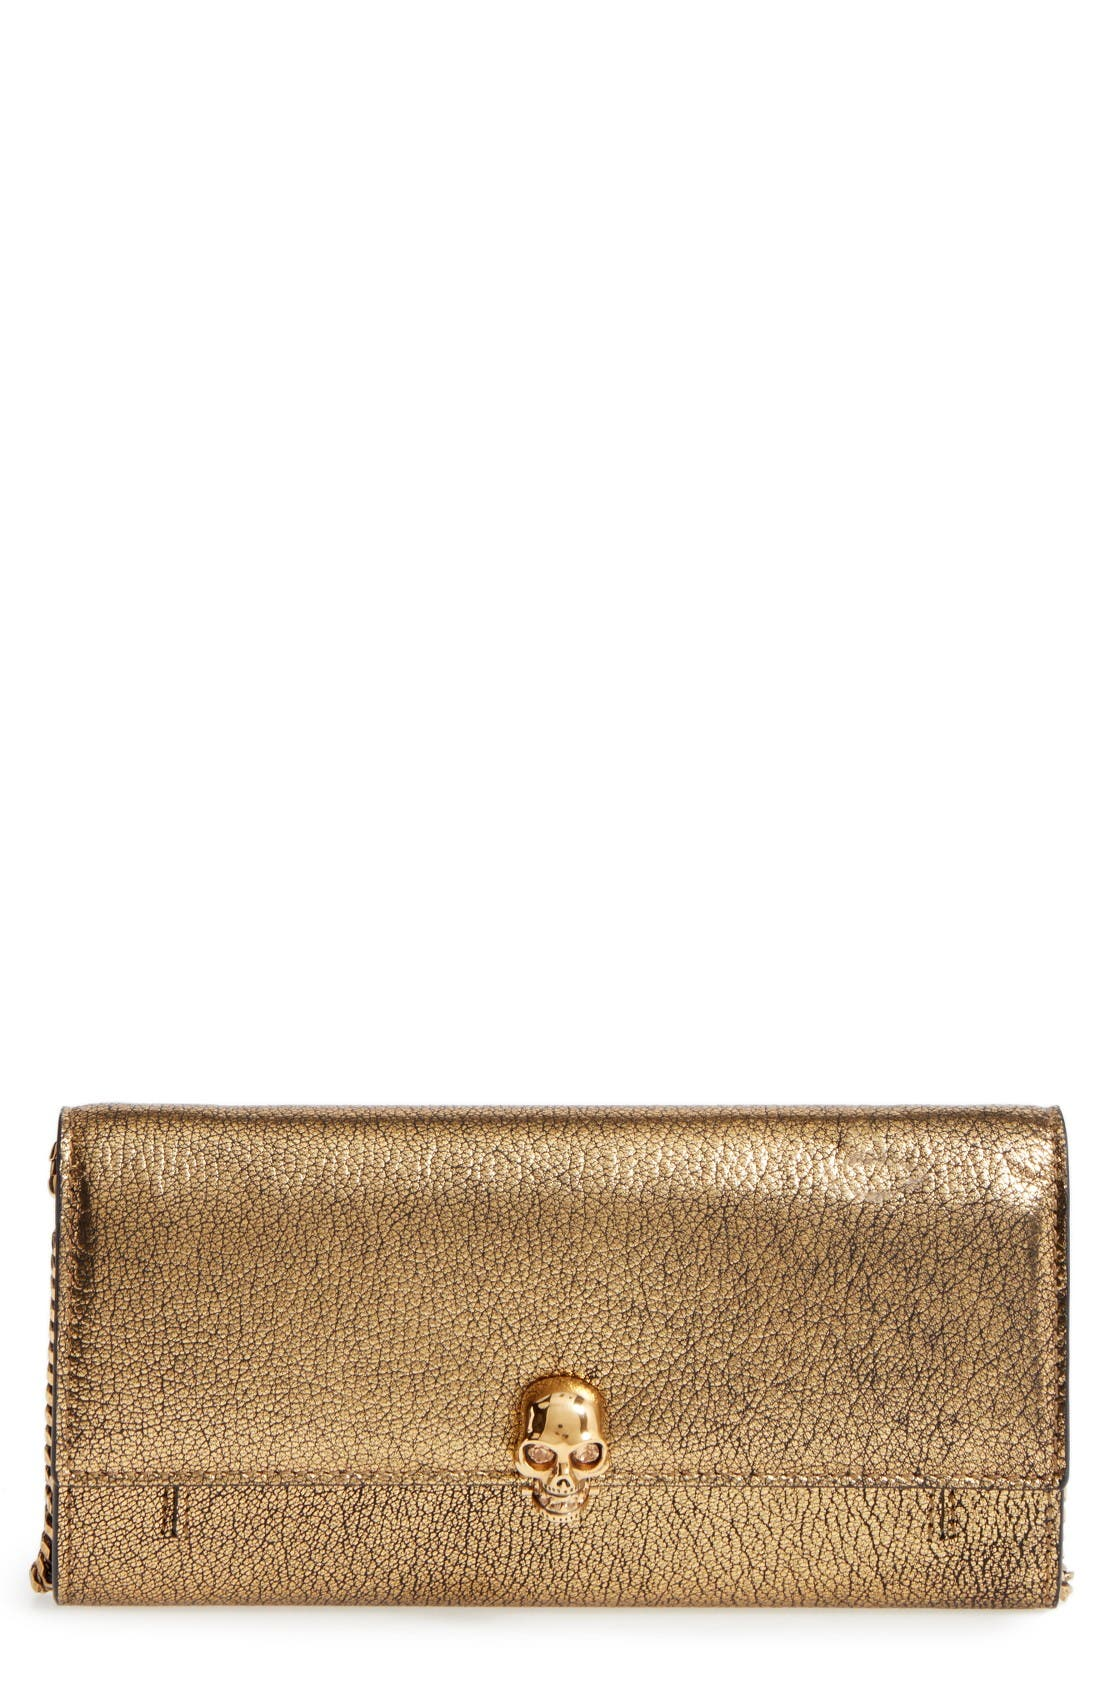 Alternate Image 1 Selected - Alexander McQueen Skull Leather Wallet on a Chain